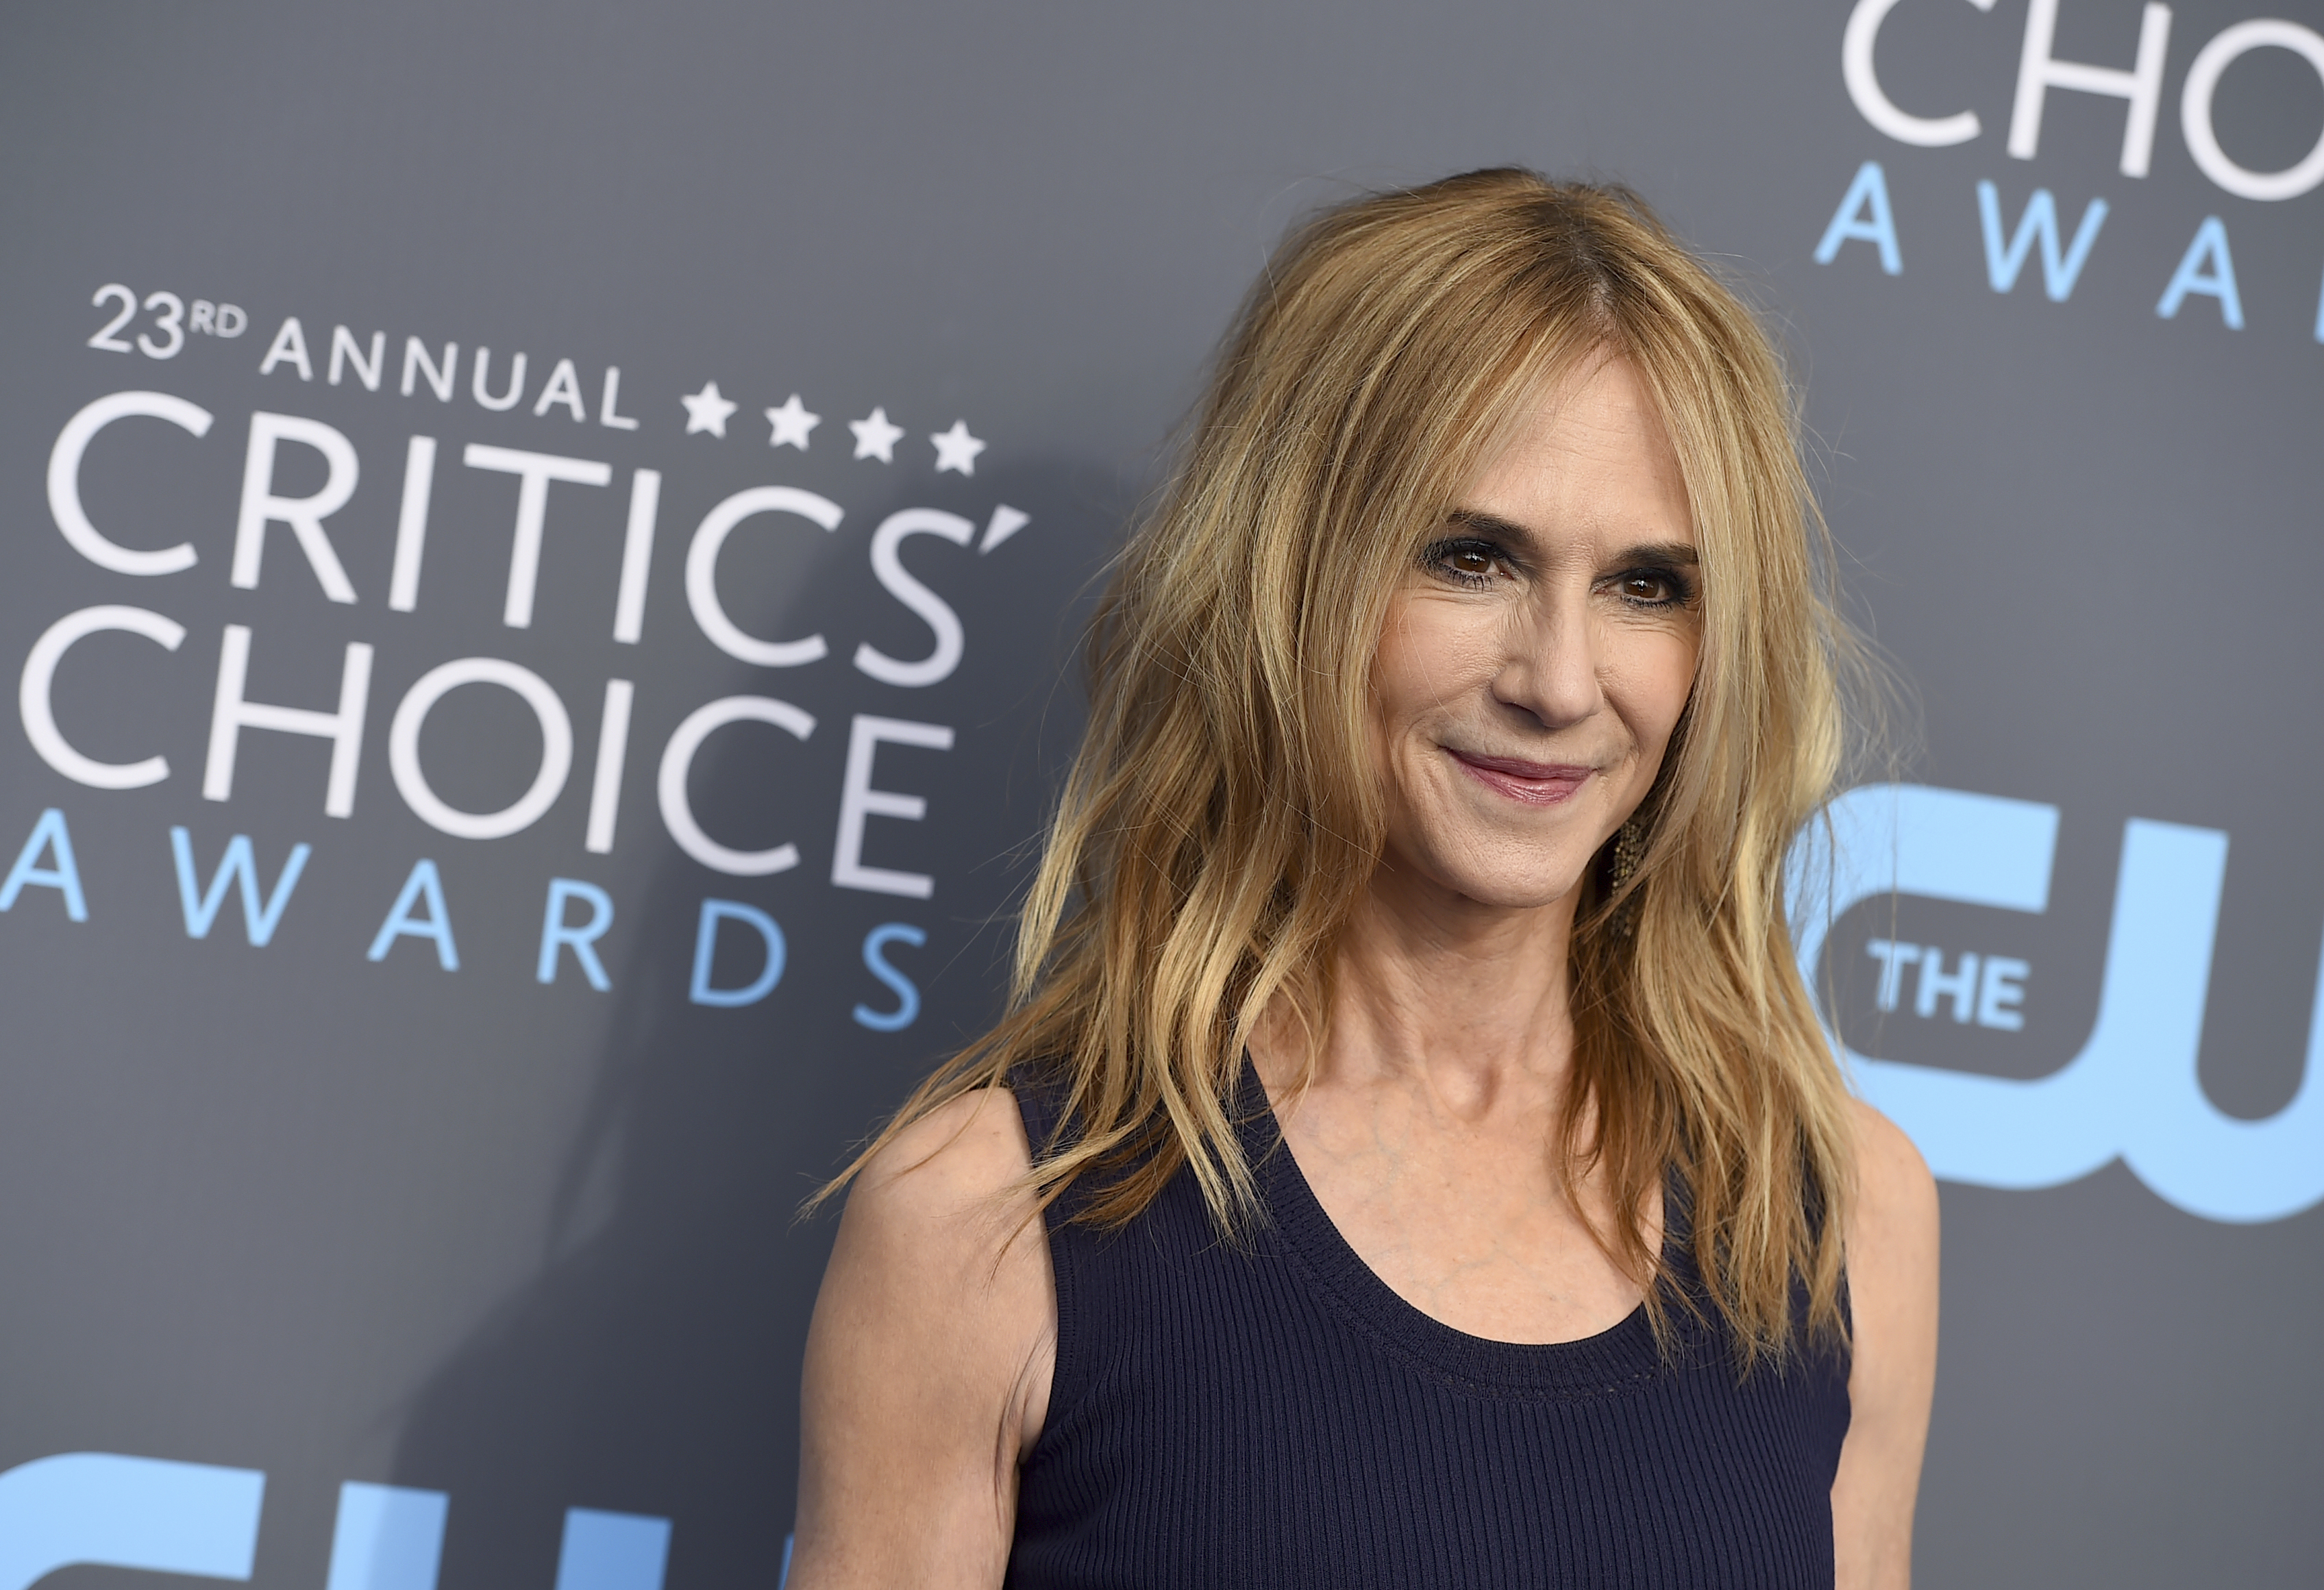 <div class='meta'><div class='origin-logo' data-origin='AP'></div><span class='caption-text' data-credit='Jordan Strauss/Invision/AP'>Holly Hunter arrives at the 23rd annual Critics' Choice Awards at the Barker Hangar on Thursday, Jan. 11, 2018, in Santa Monica, Calif.</span></div>